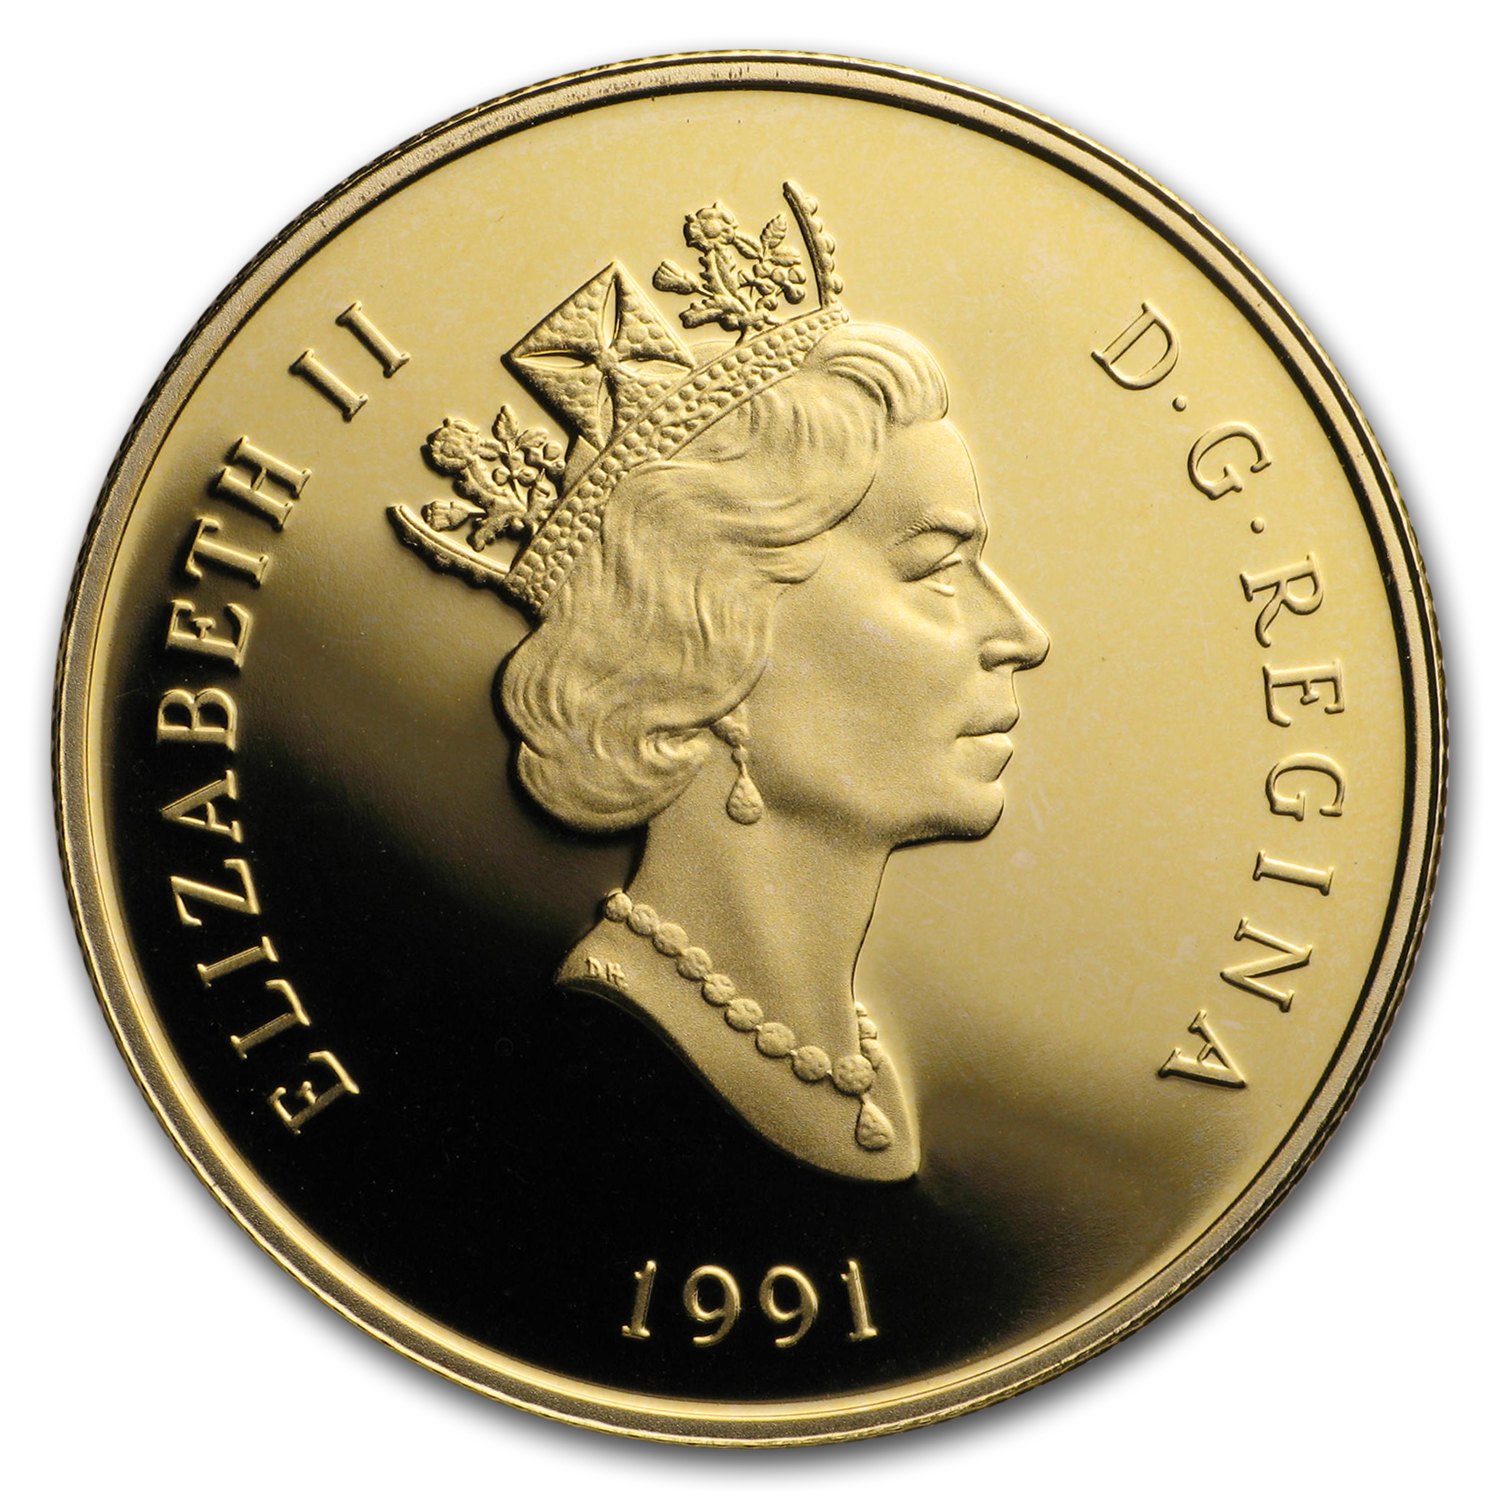 1991 1/4 oz Gold Canadian $100 Proof - Empress of India